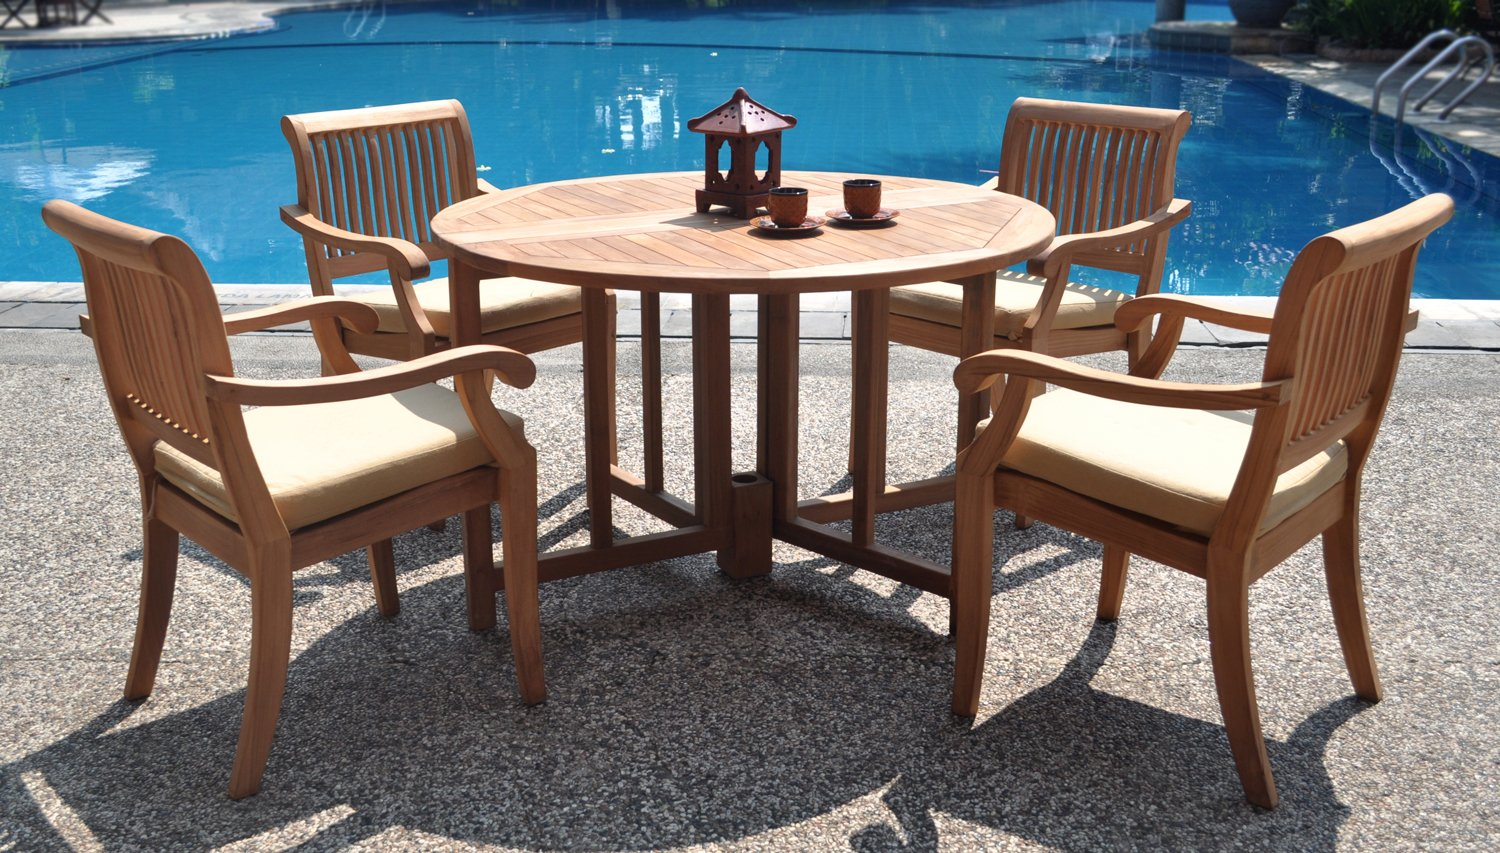 "New 5 Pc Luxurious Grade-A Teak Dining Set: 48"" Round Butterfly Table and 4 Arbor Arm Stacking Chairs - The chairs are stackable for easy storage. Round table folds in butterfly fashion. Also has a hole for an umbrella. ADD SUNBRELLA FABRIC CUSHIONS BY SEARCHING ASIN ""B01I4CC166"" or ""Wholesaleteak Dining Cushion"" ON AMAZON, CUSTOM MADE FOR THESE STYLE CHAIRS - patio-furniture, dining-sets-patio-funiture, patio - 81rP%2BEzCYOL -"